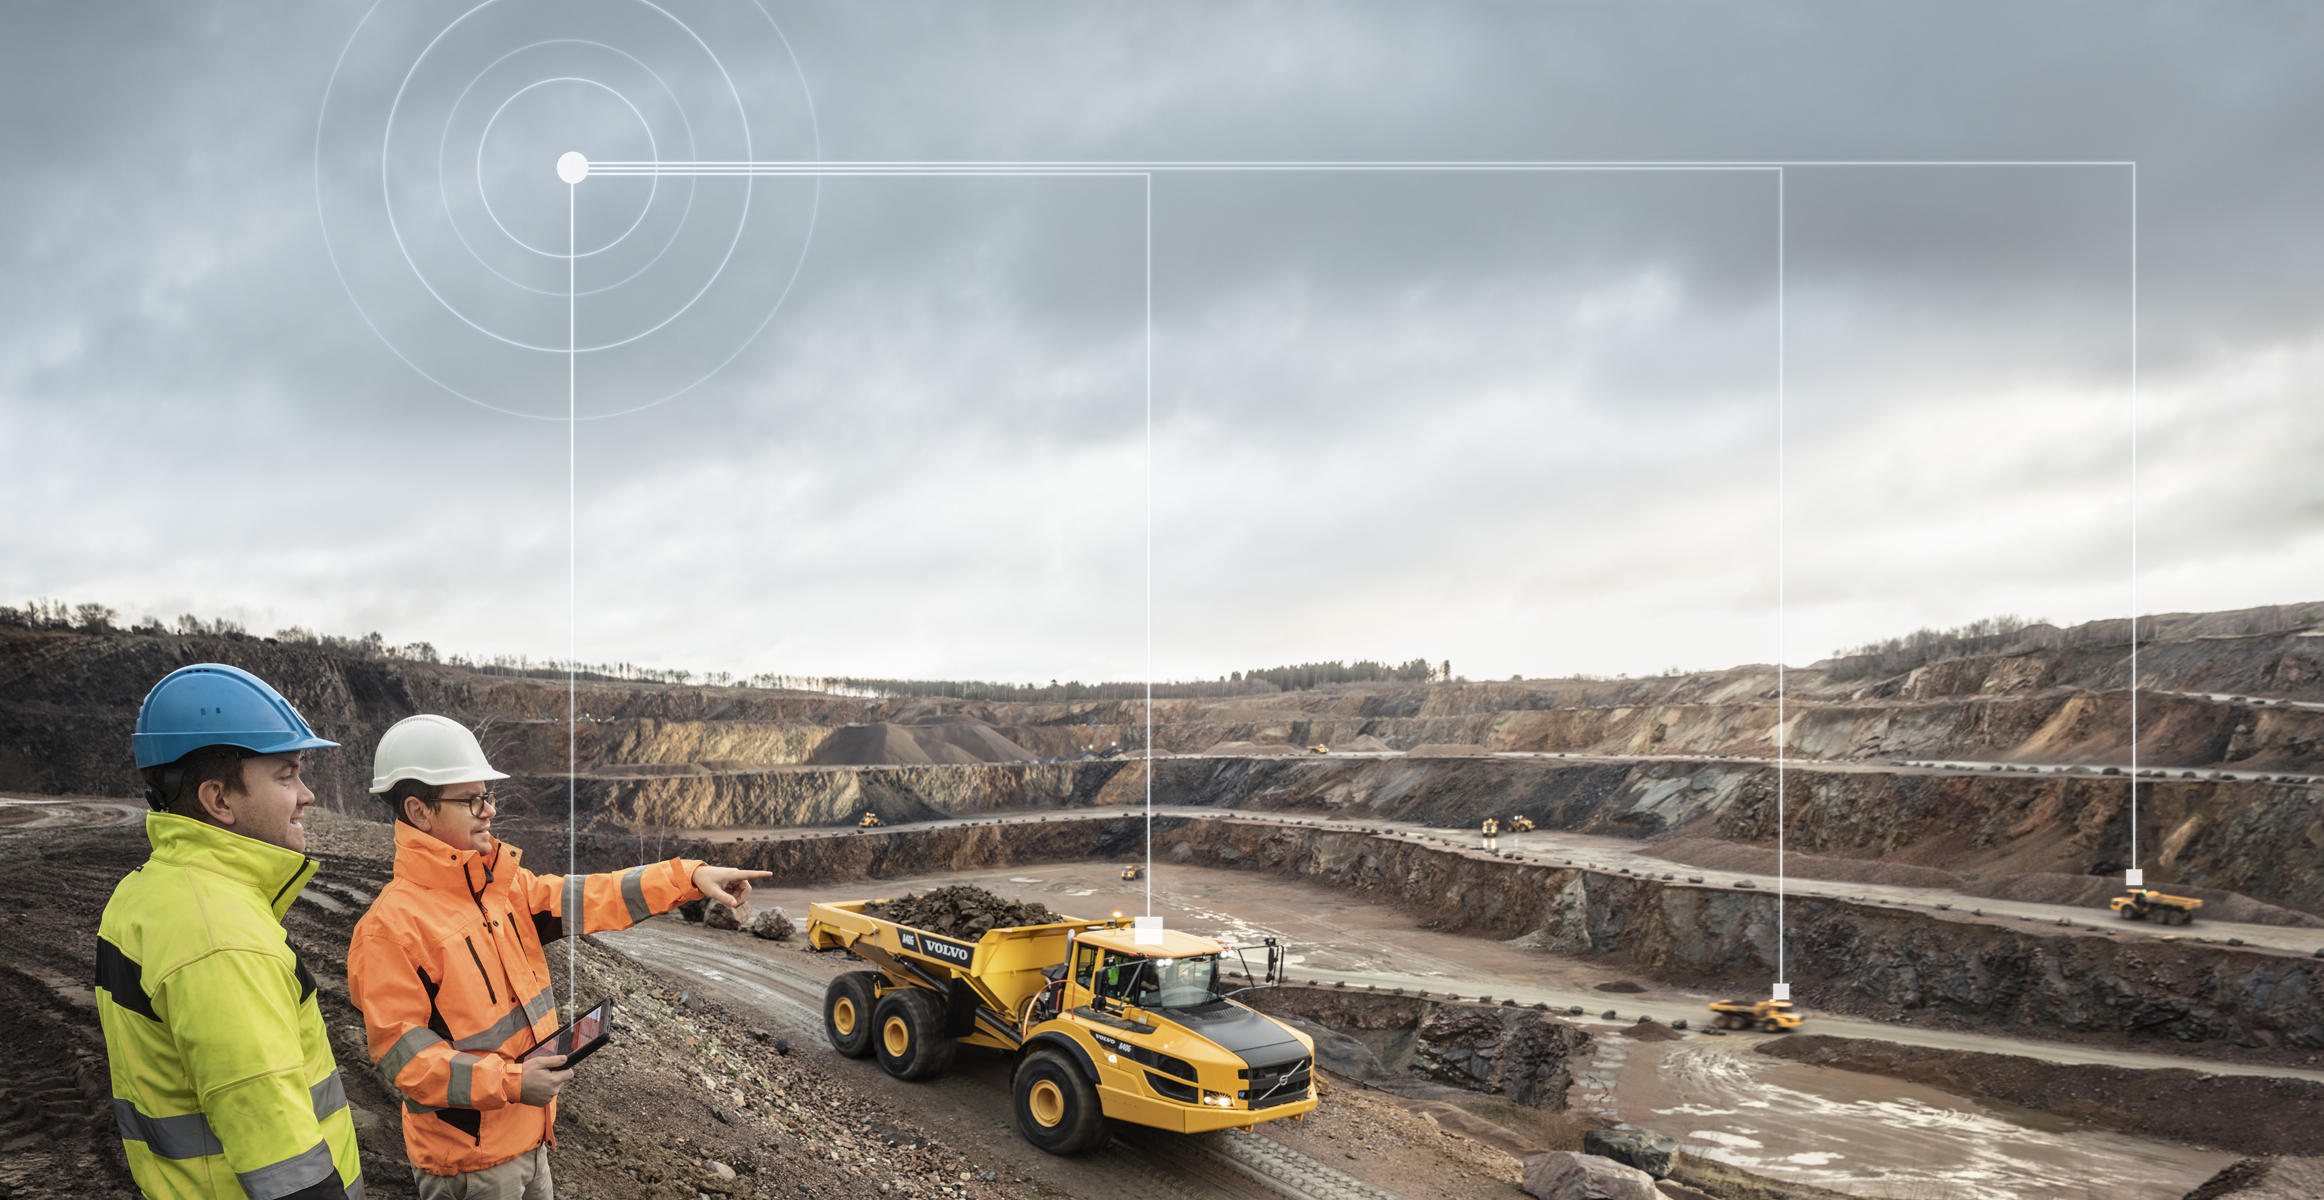 Monitor telematics data for safety issues